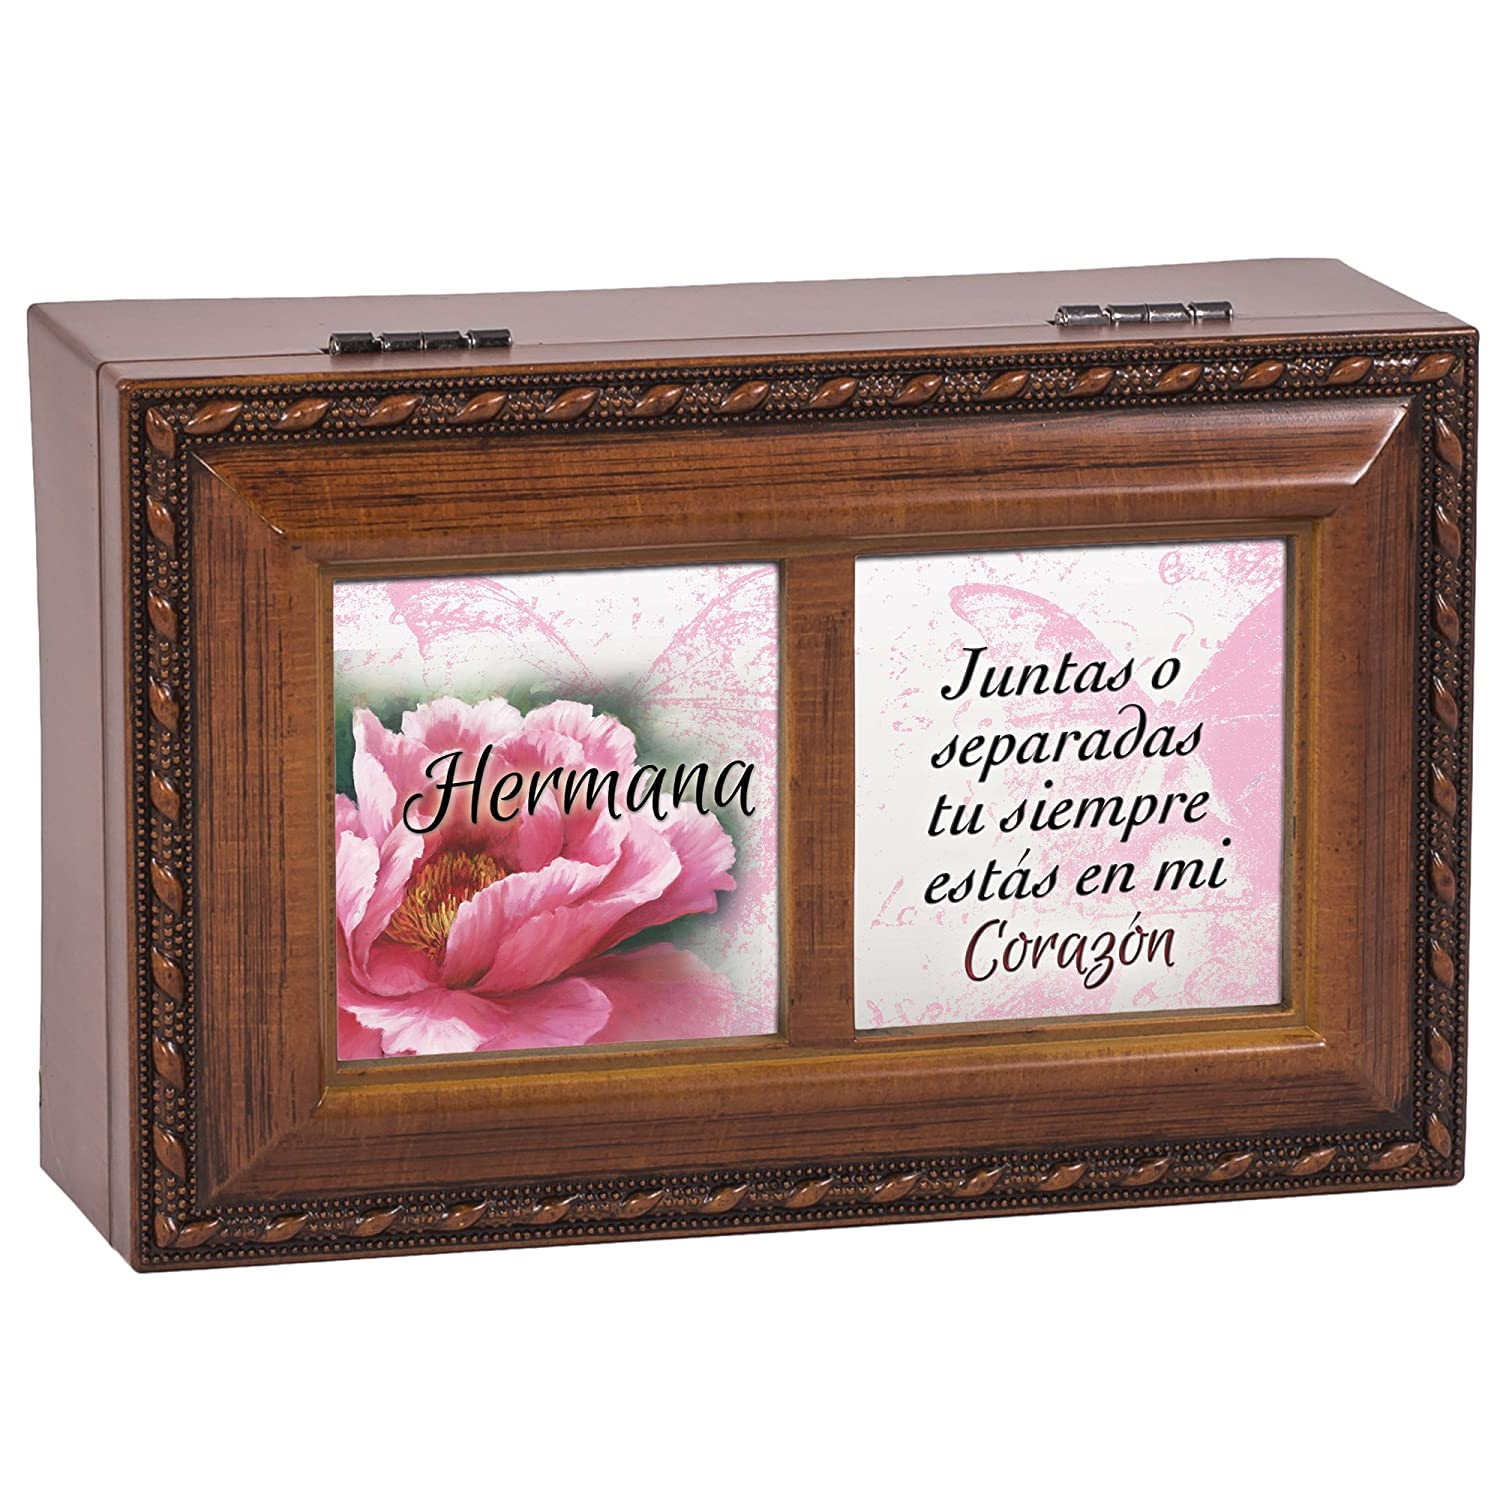 Amazon.com: Cottage Garden Hermana Sister Wood Finish Small Jewelry Music Box Thats What Friends are: Home & Kitchen